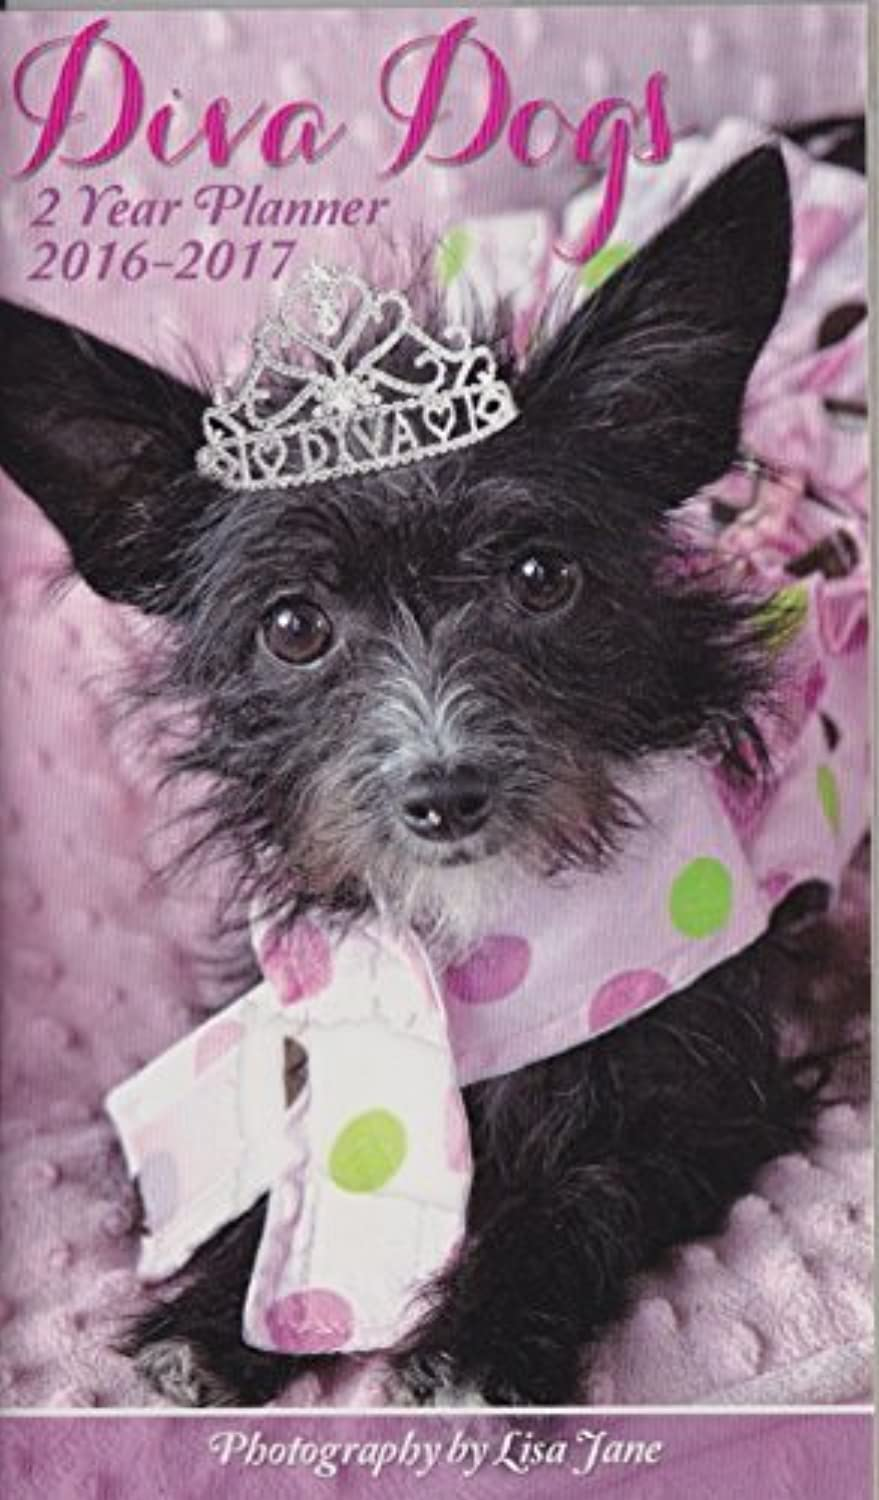 2016-2017 Two Year Monthly Pocket Planner Planner Planner - Diva Dogs by Studio 10 B018RFBO0O | Qualität Produkte  582e5f